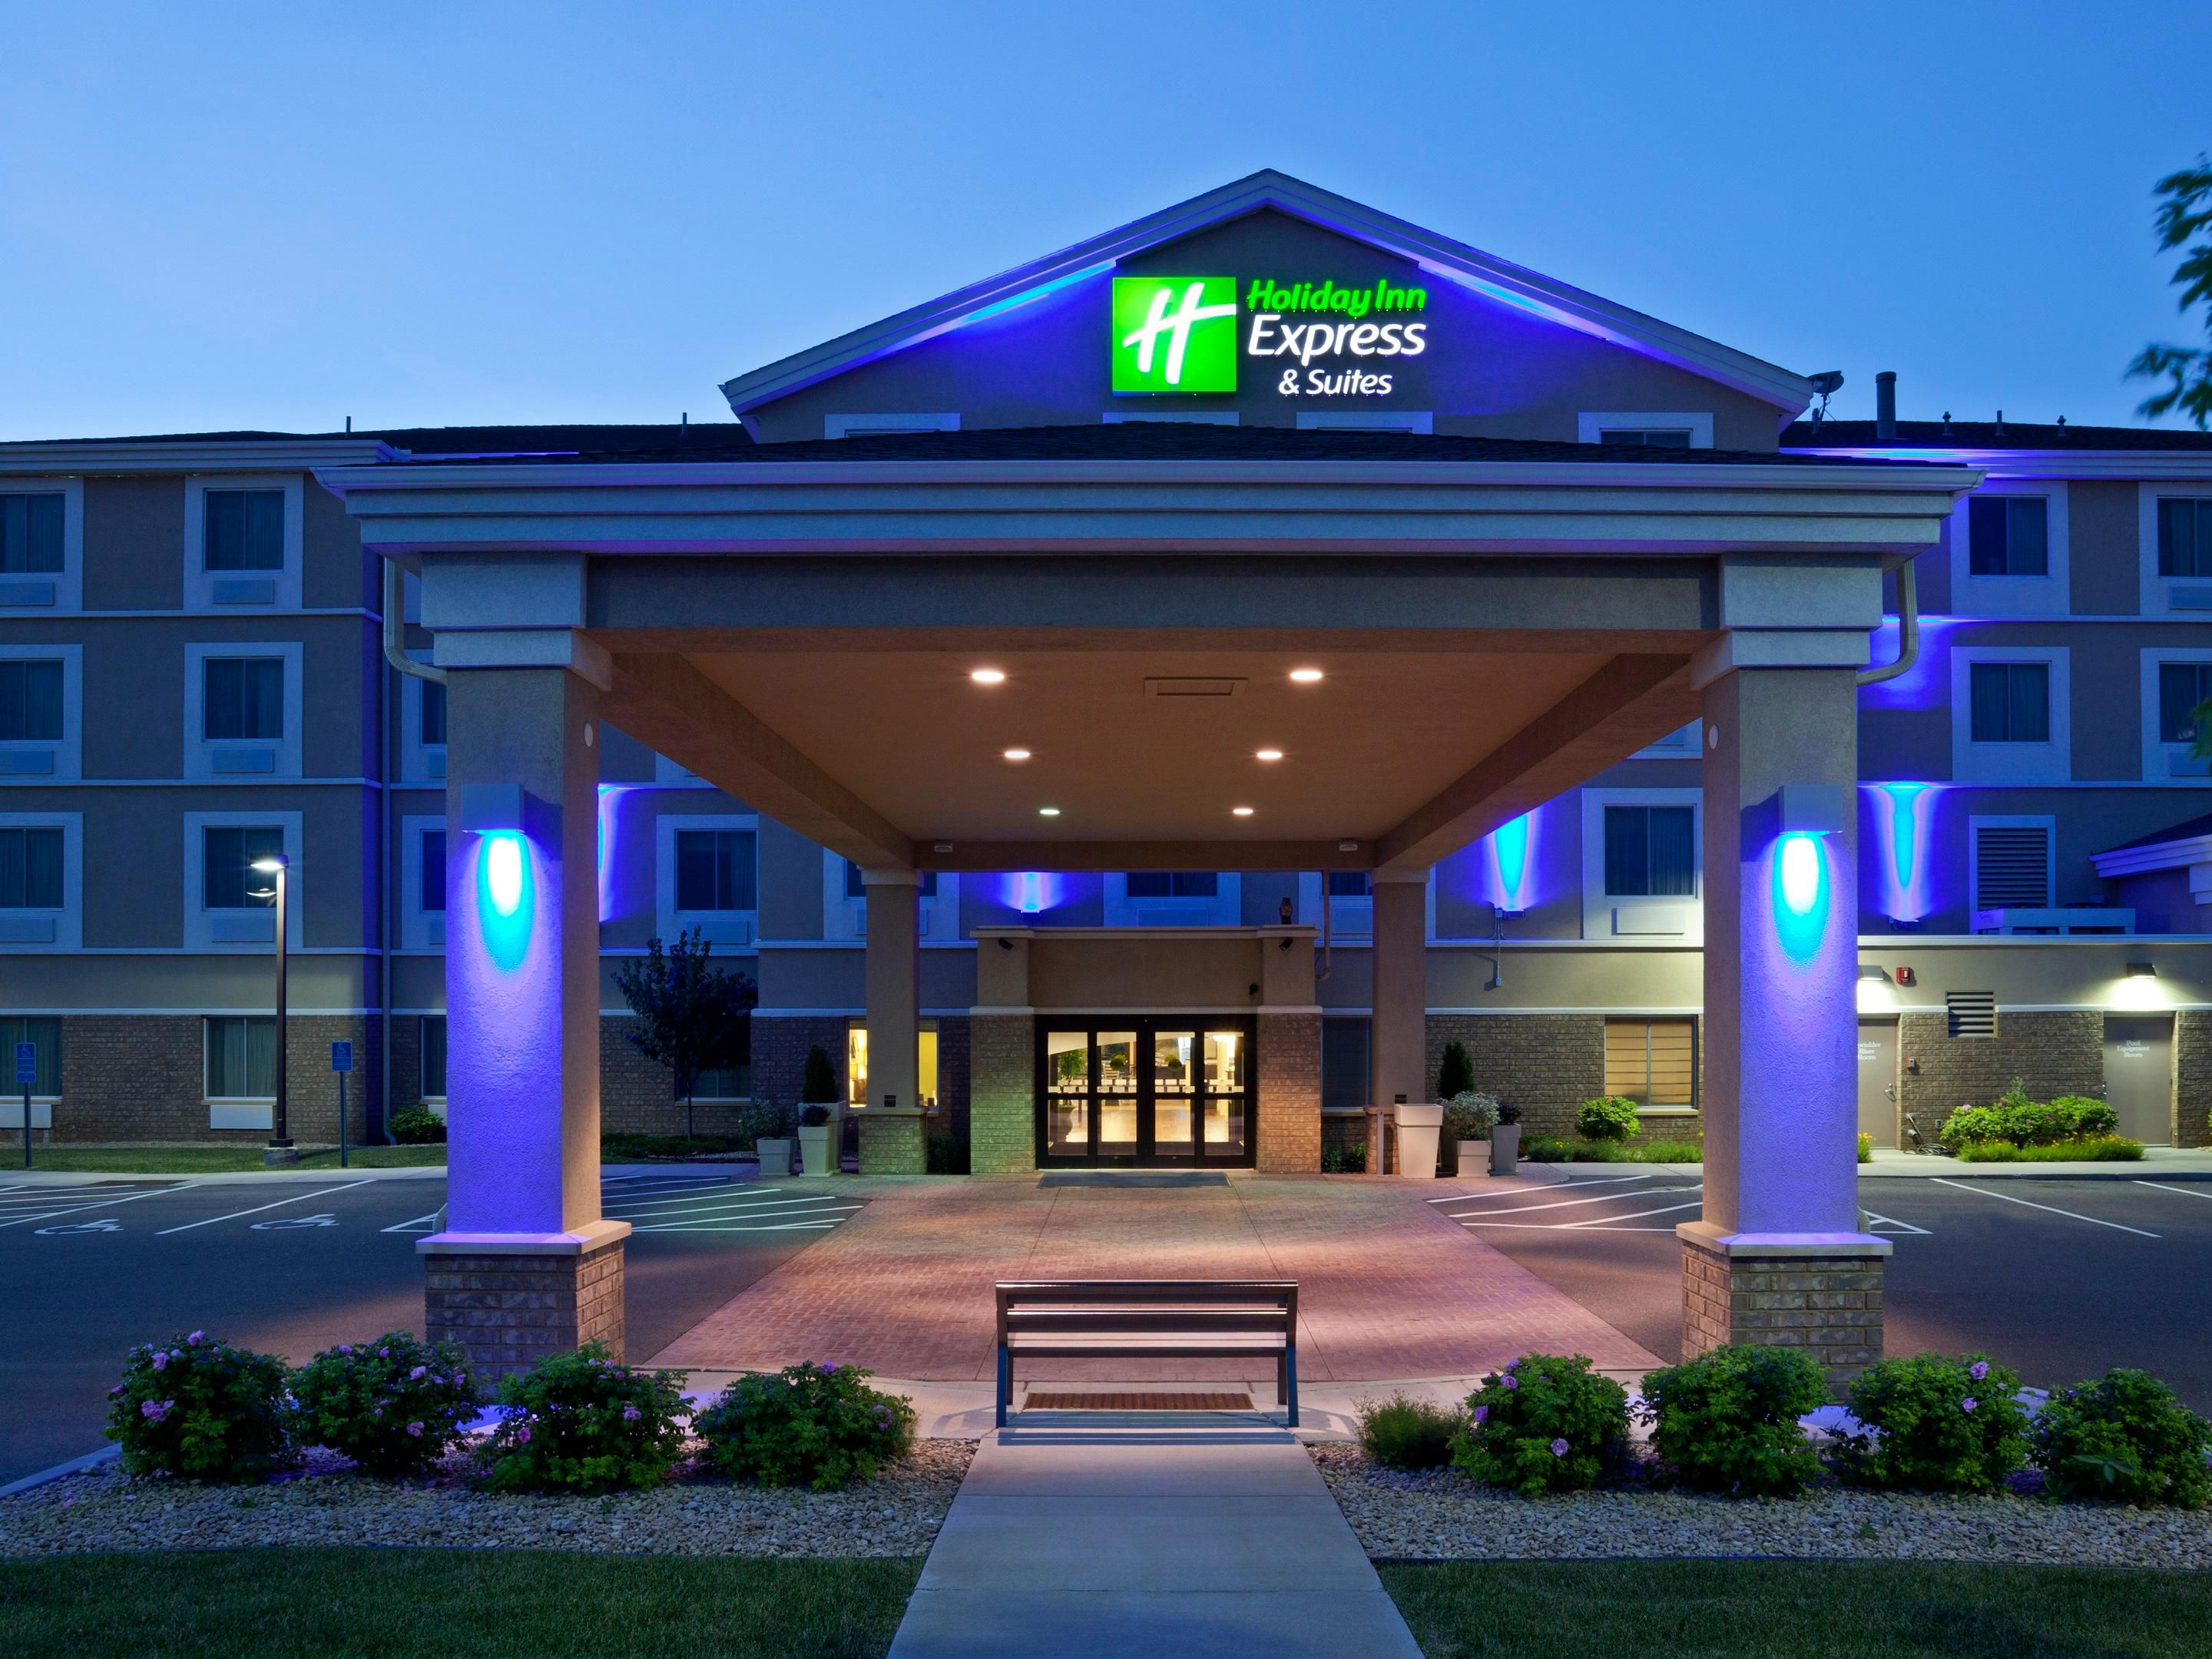 Holiday Inn Express & Suites Rogers built in 2010